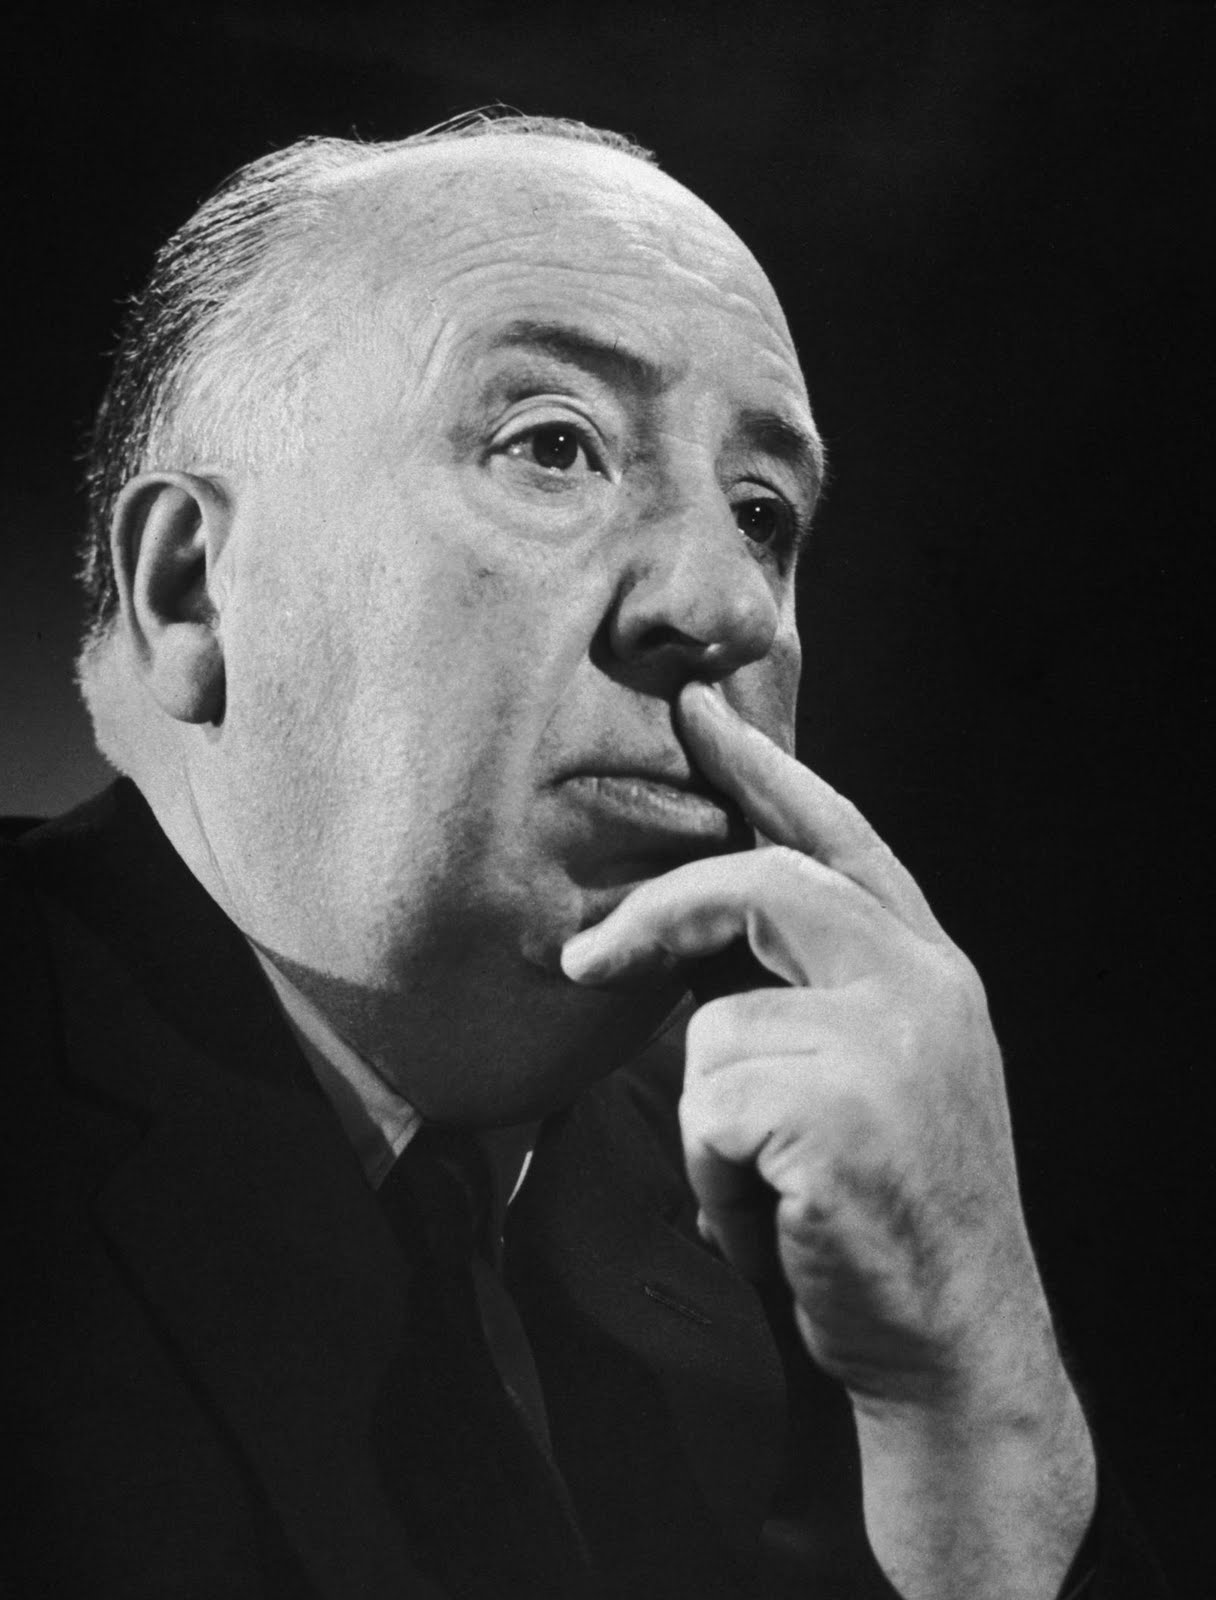 alfred hitchcock filme